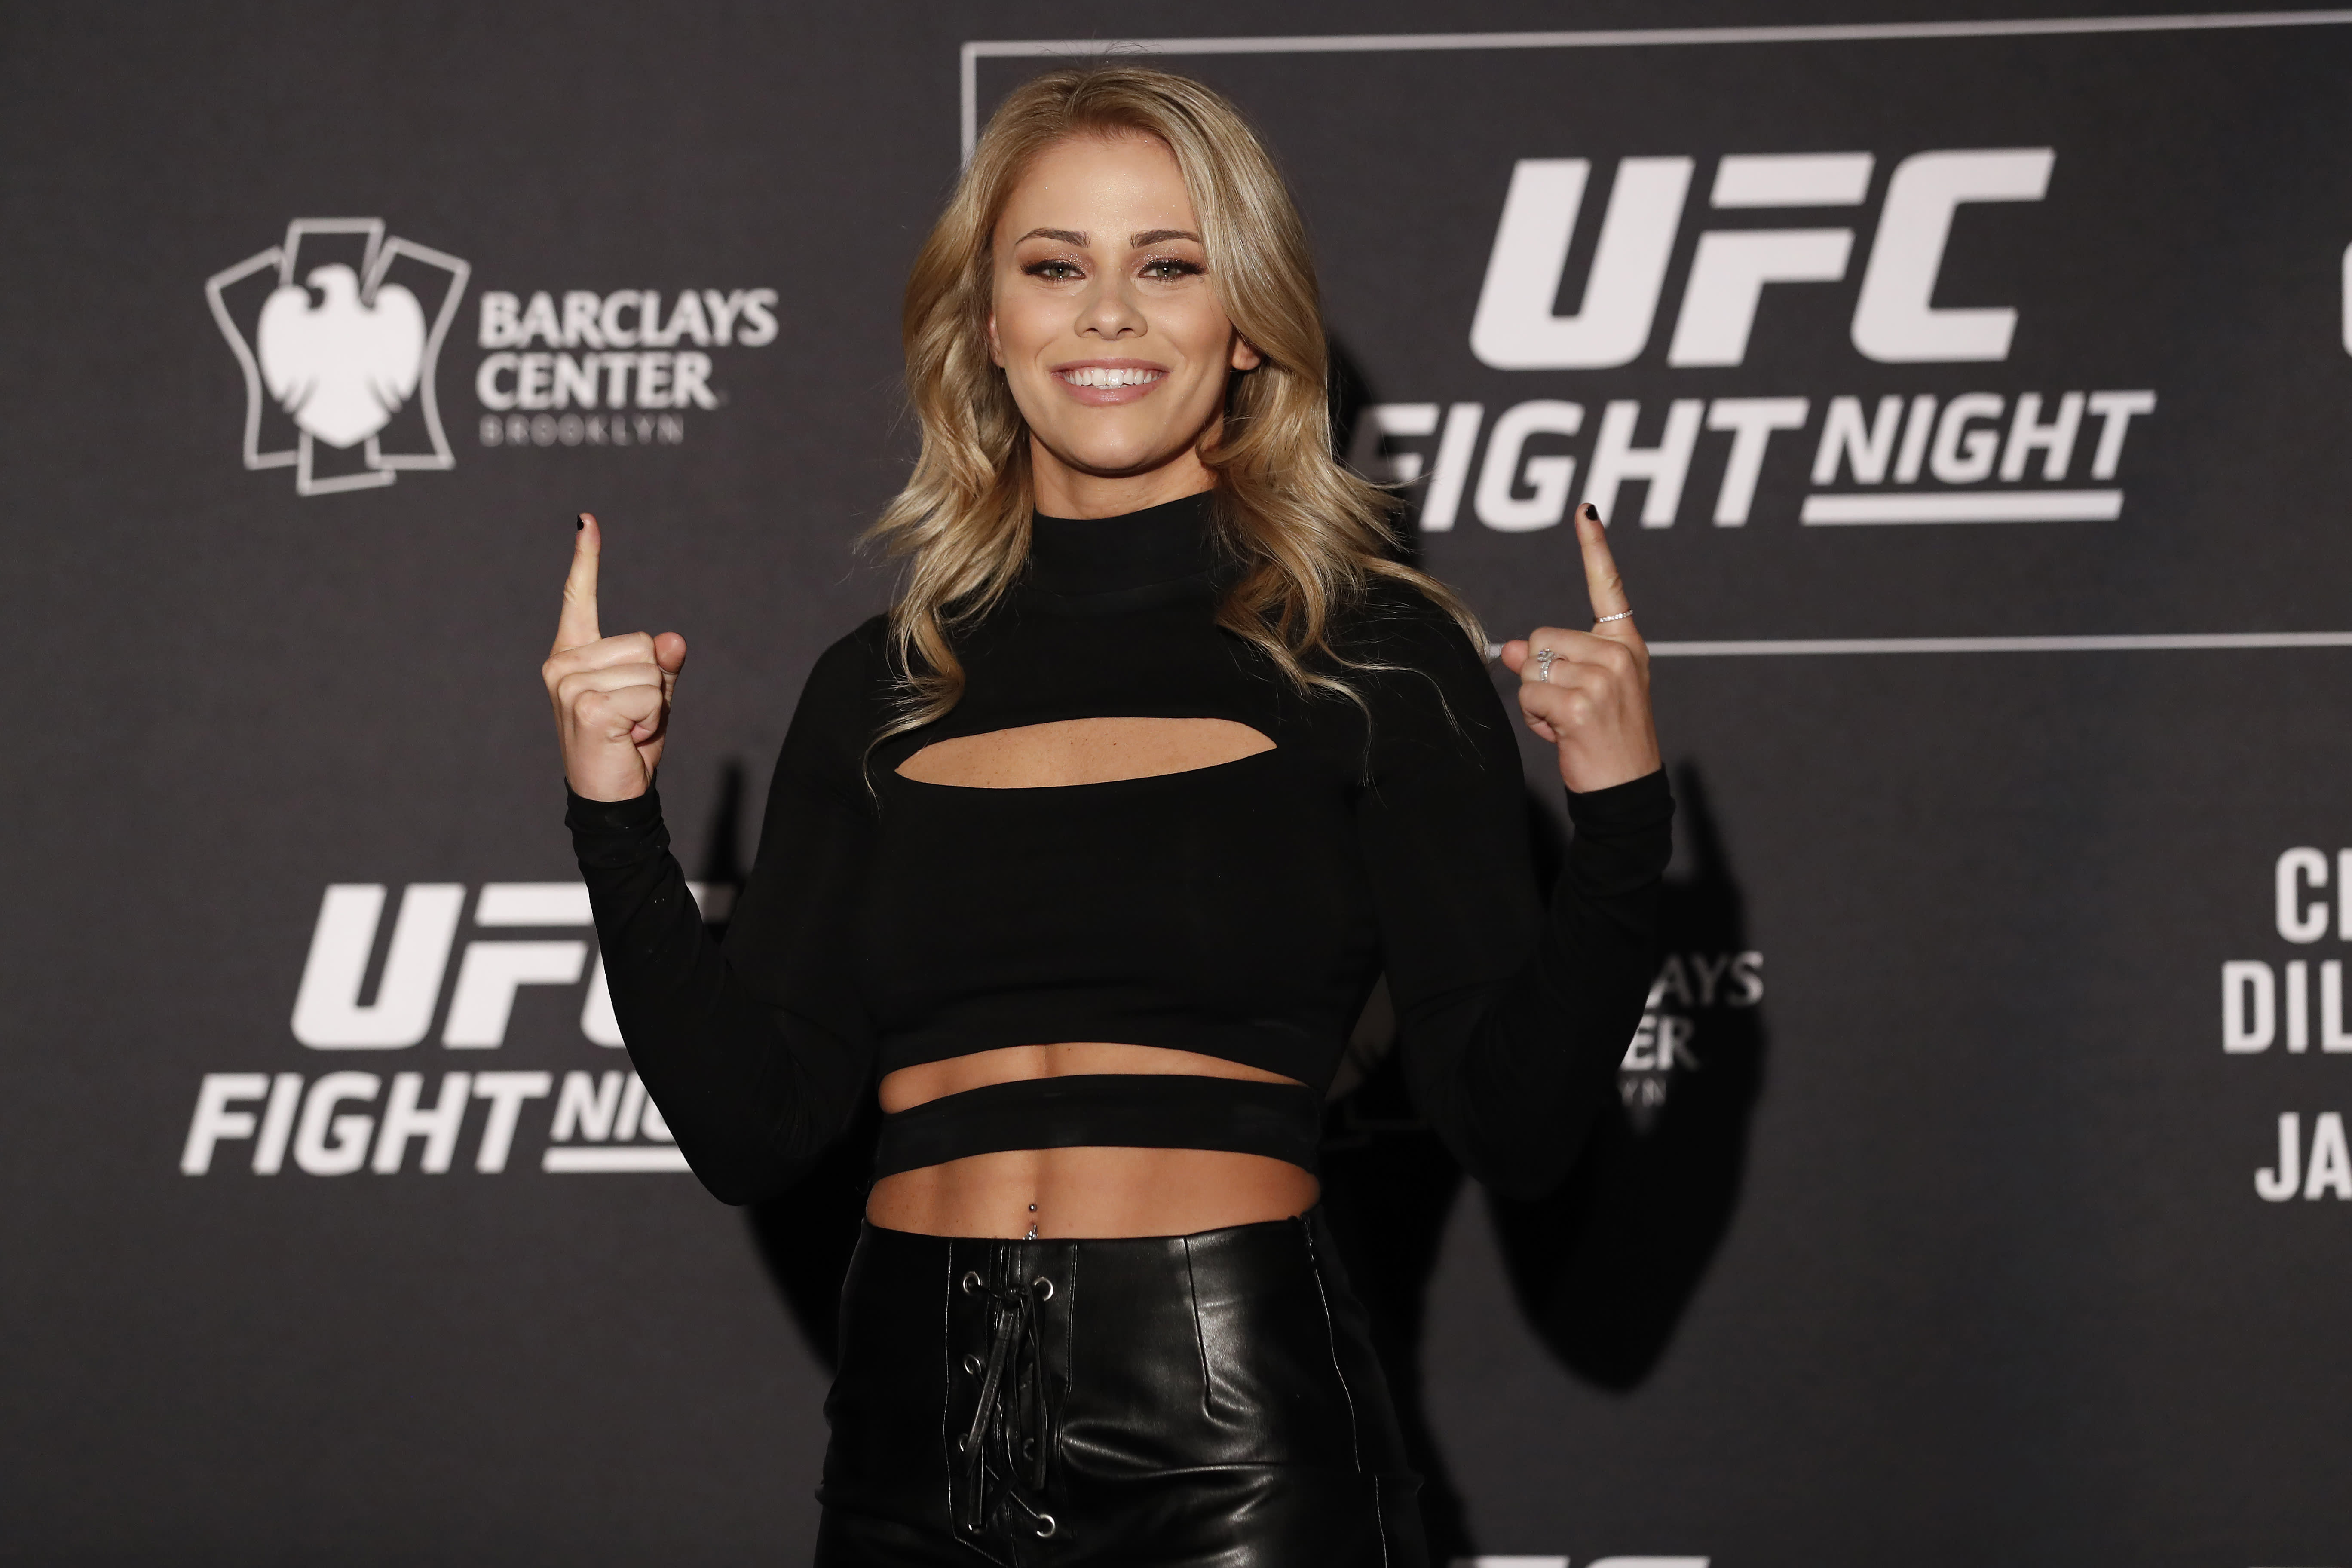 UFC's Paige VanZant on fight for equal pay: I make 'way more money' on Instagram